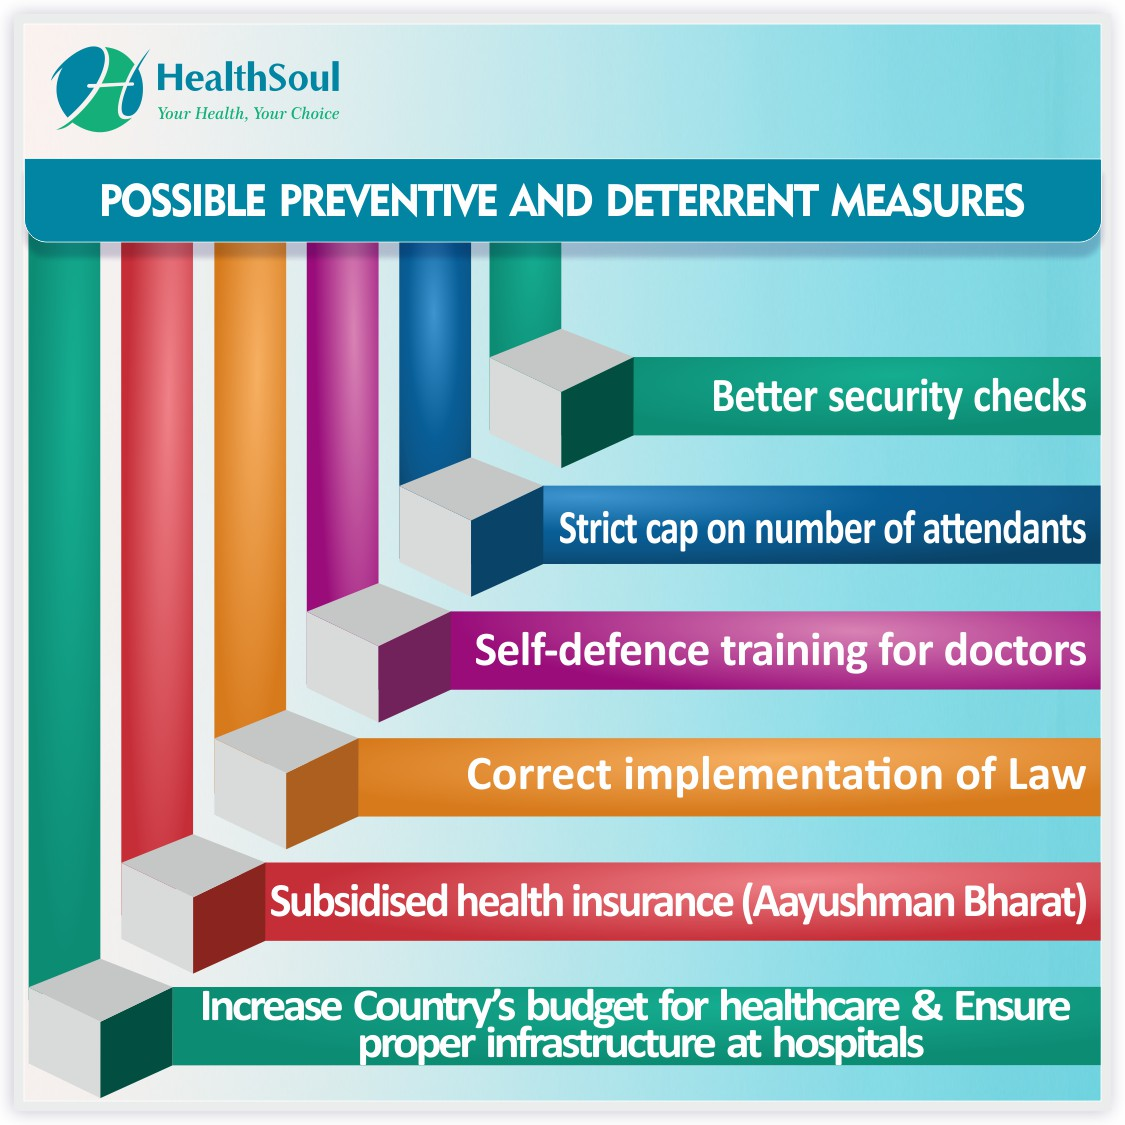 Possible Preventive and Deterrent Measures